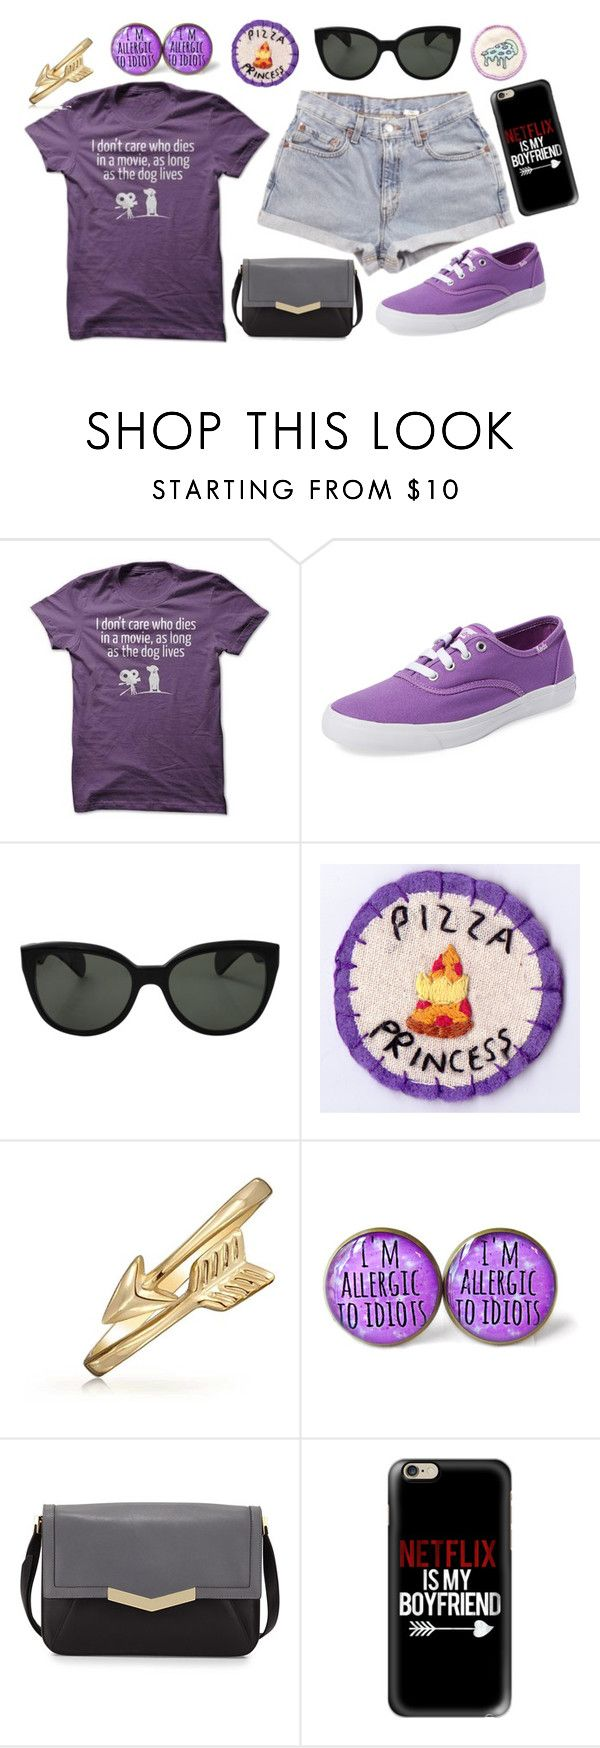 """I'm pretty much an Avenger."" by peregrinetook ❤ liked on Polyvore featuring Levi's, Keds, Oliver Peoples, Bling Jewelry, Time's Arrow and Casetify"